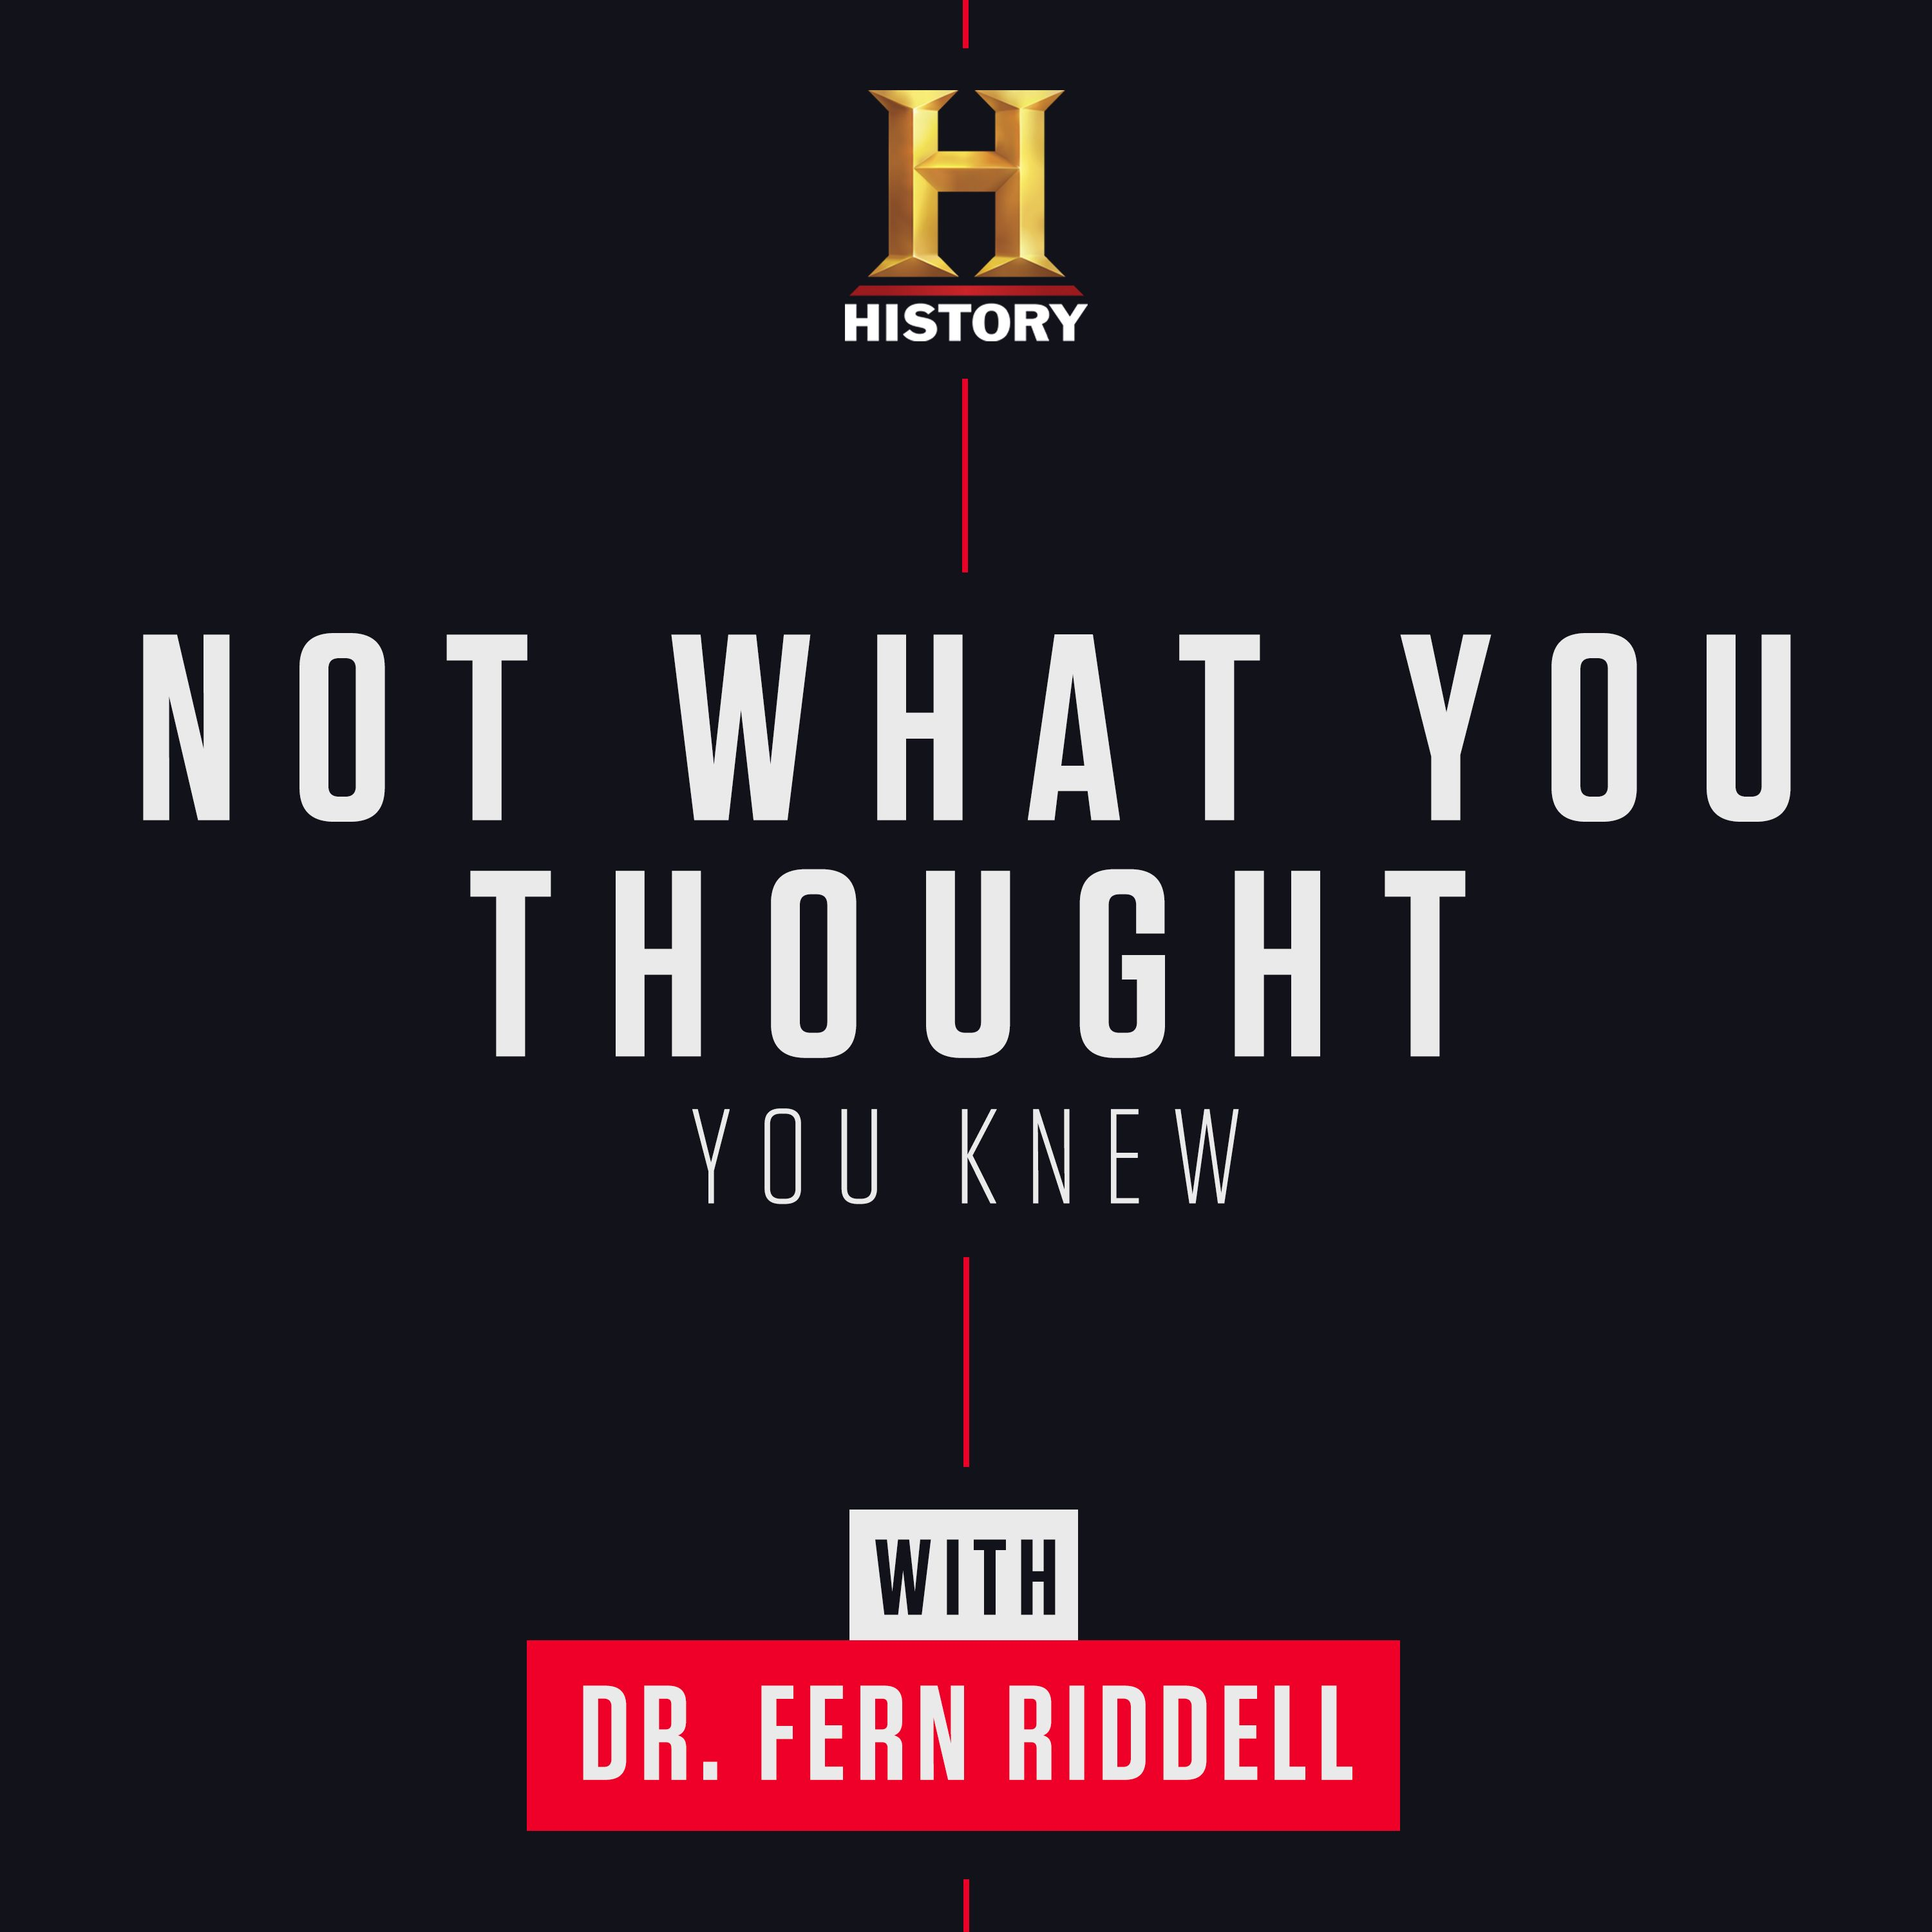 Dr Fern Riddell's new history podcast Not What You Thought You Knew